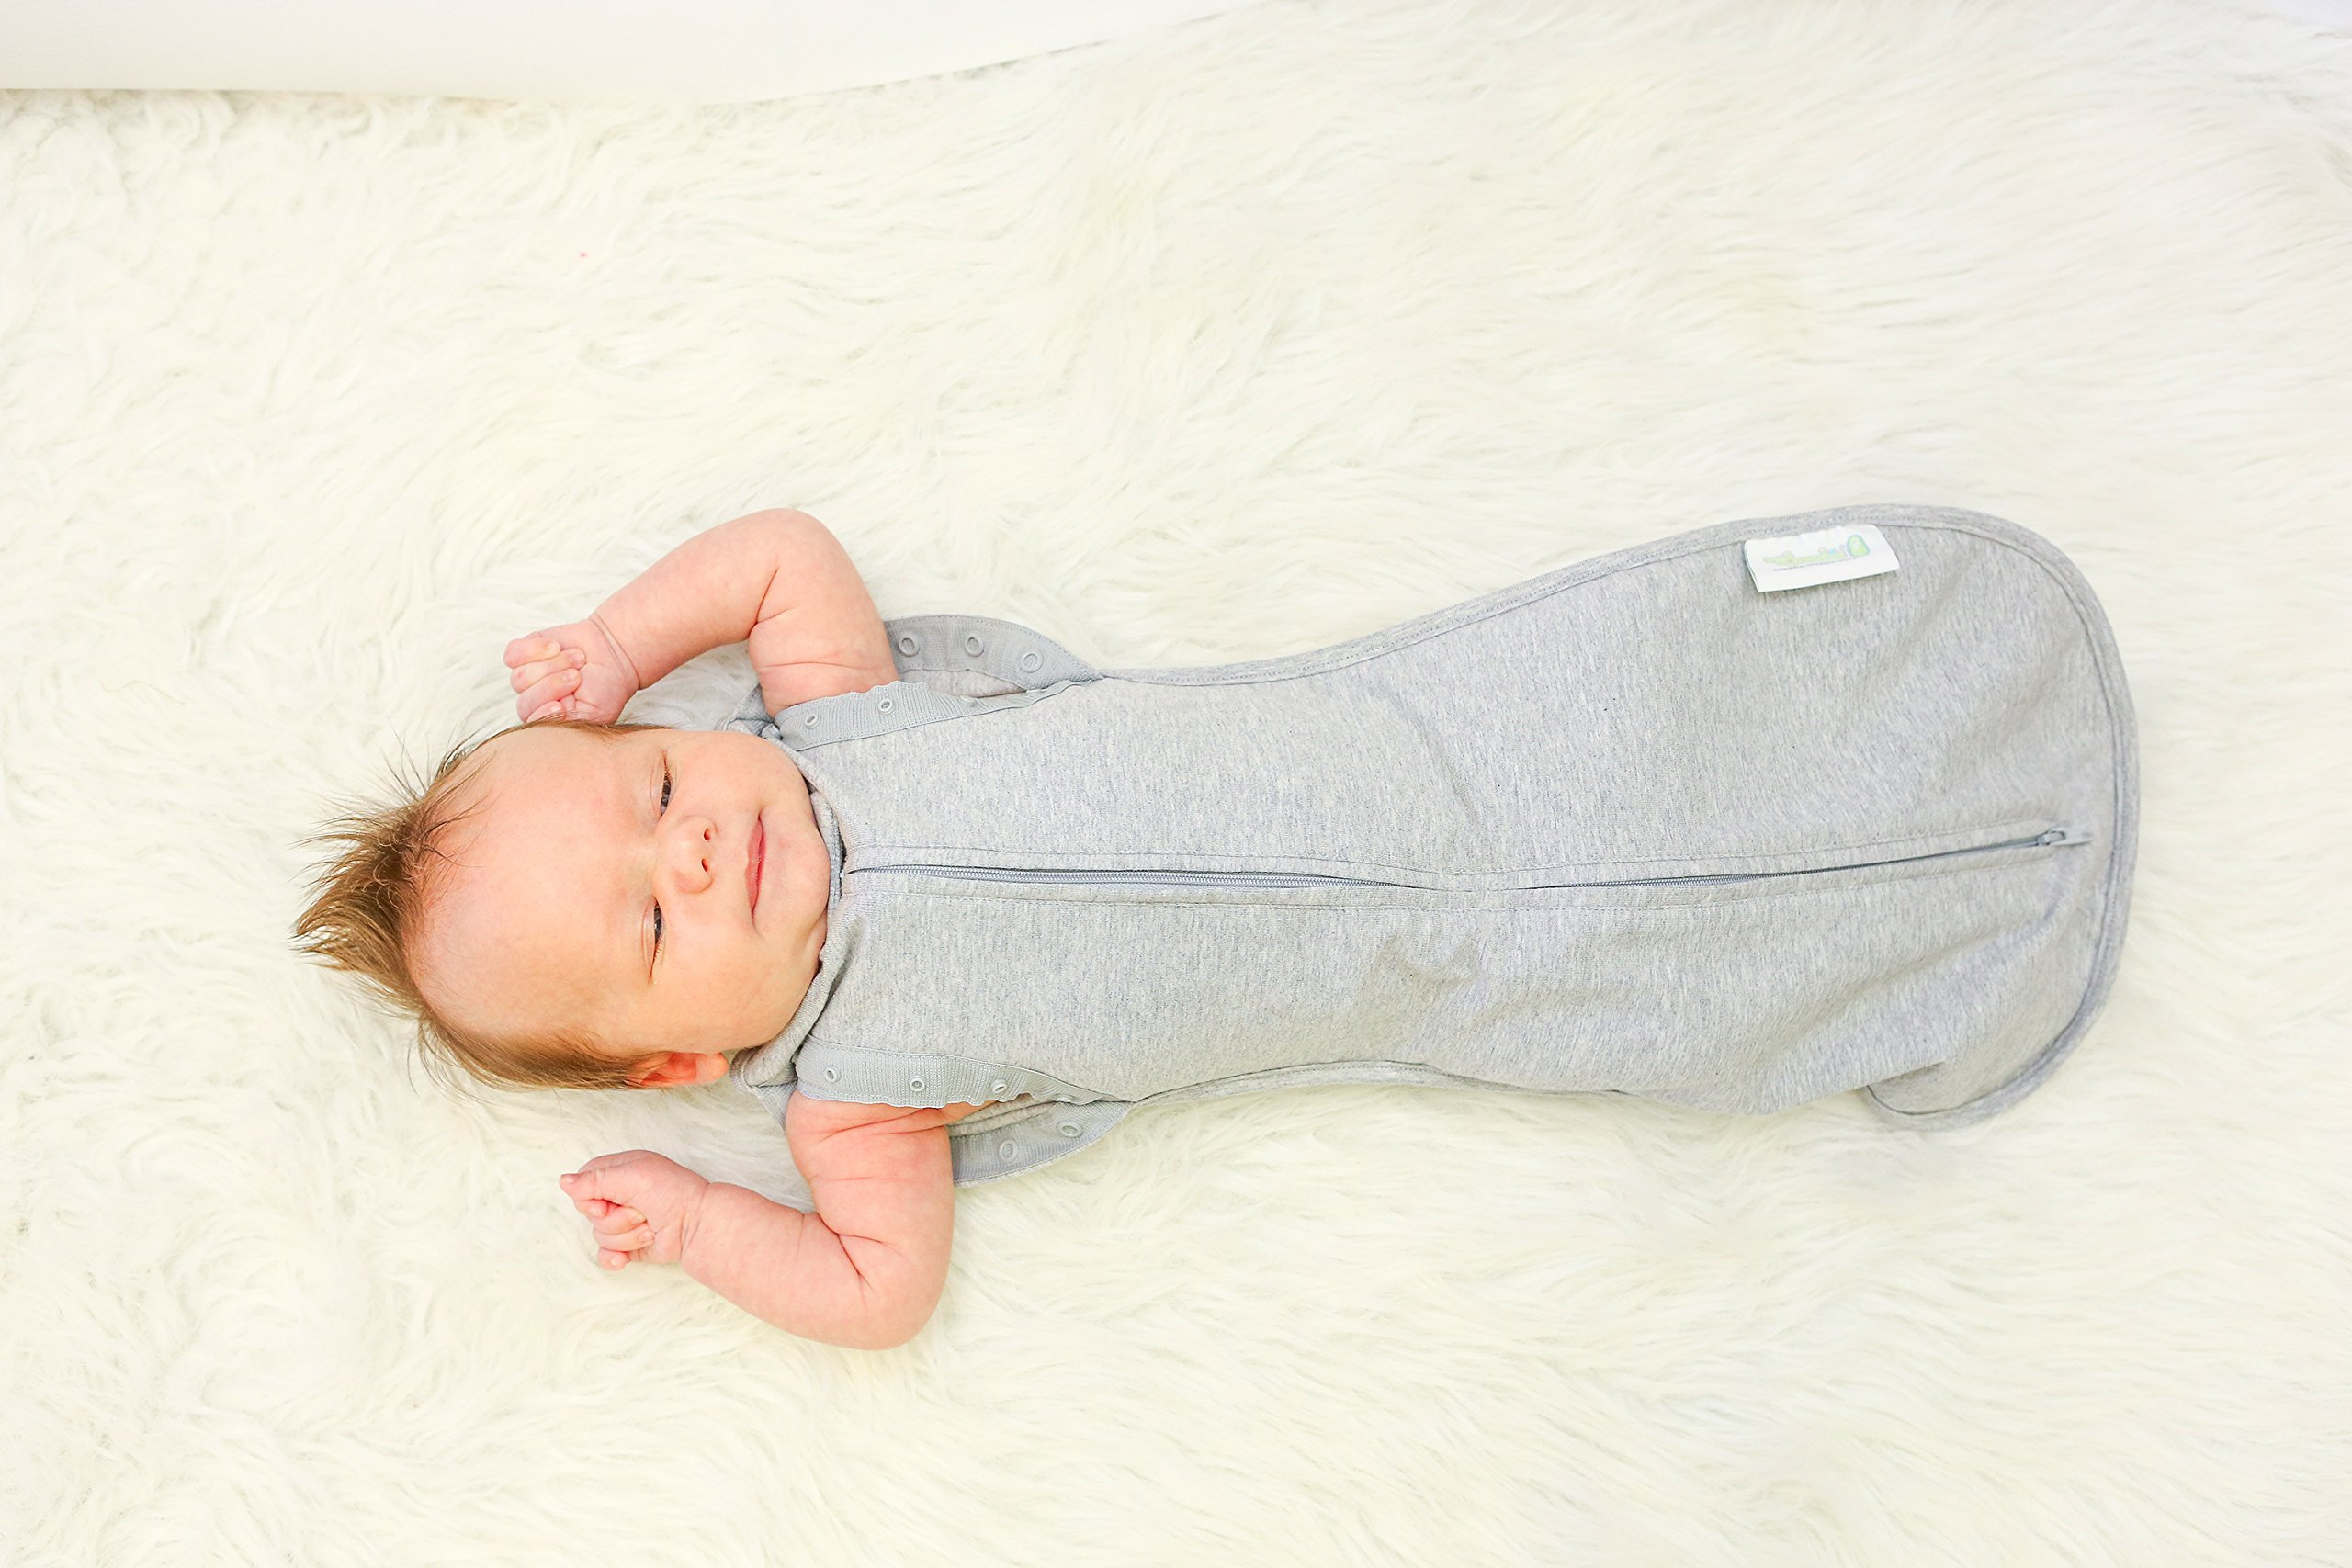 Woombie Convertible Baby Swaddle Blanket, Converts to Wearable Blanket for Babies Up to 6 Months, Grey, 14-19 lbs by Woombie